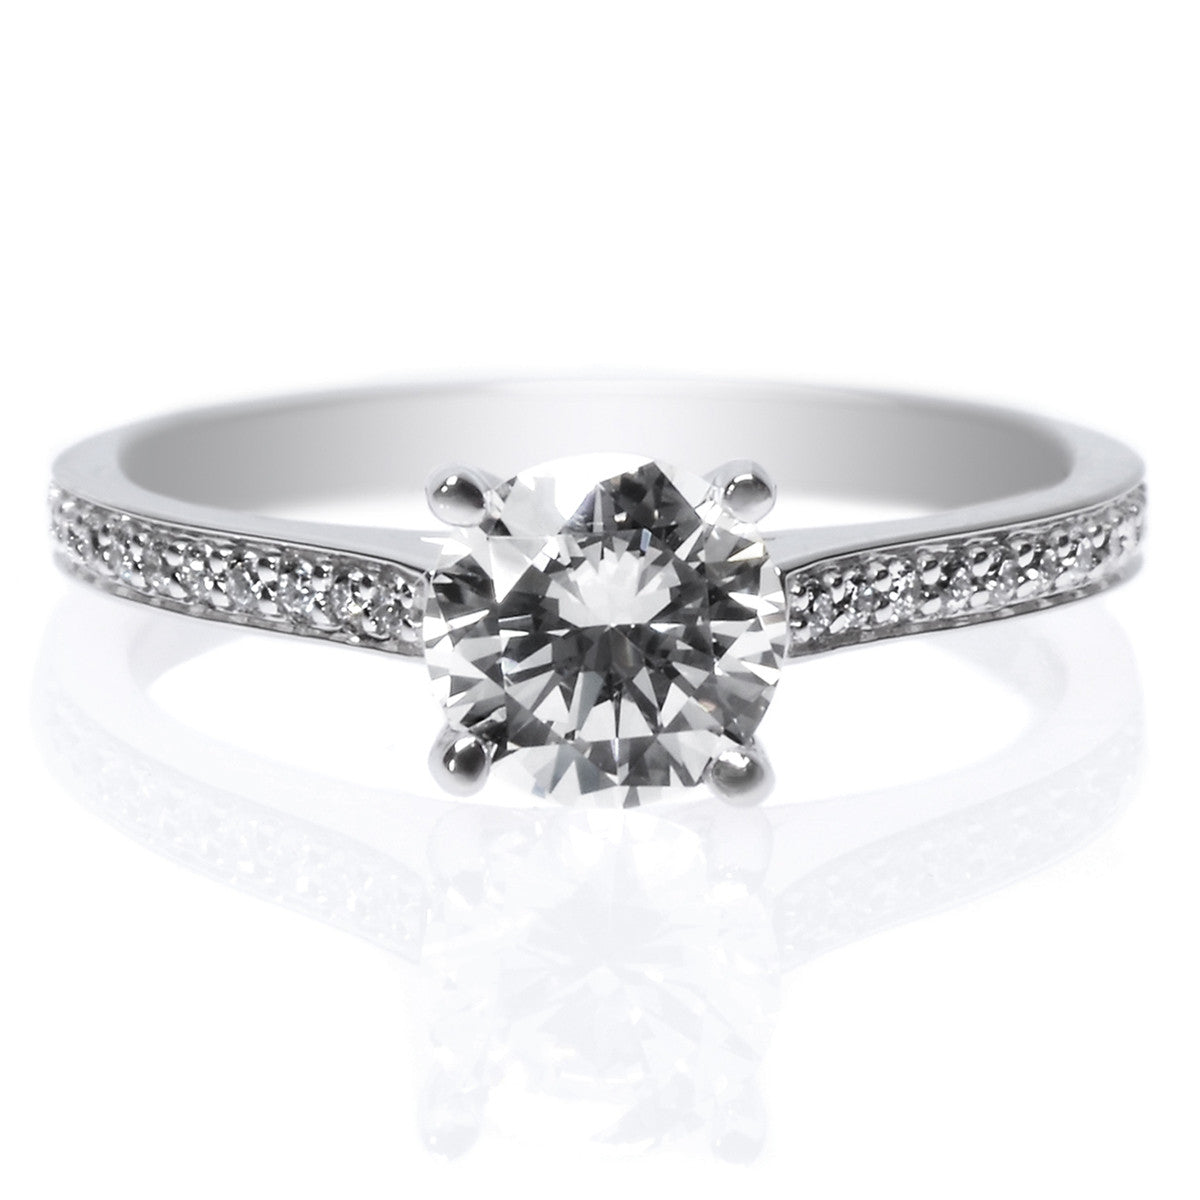 Platinum Four Prong Channel Set Diamond Engagement Ring